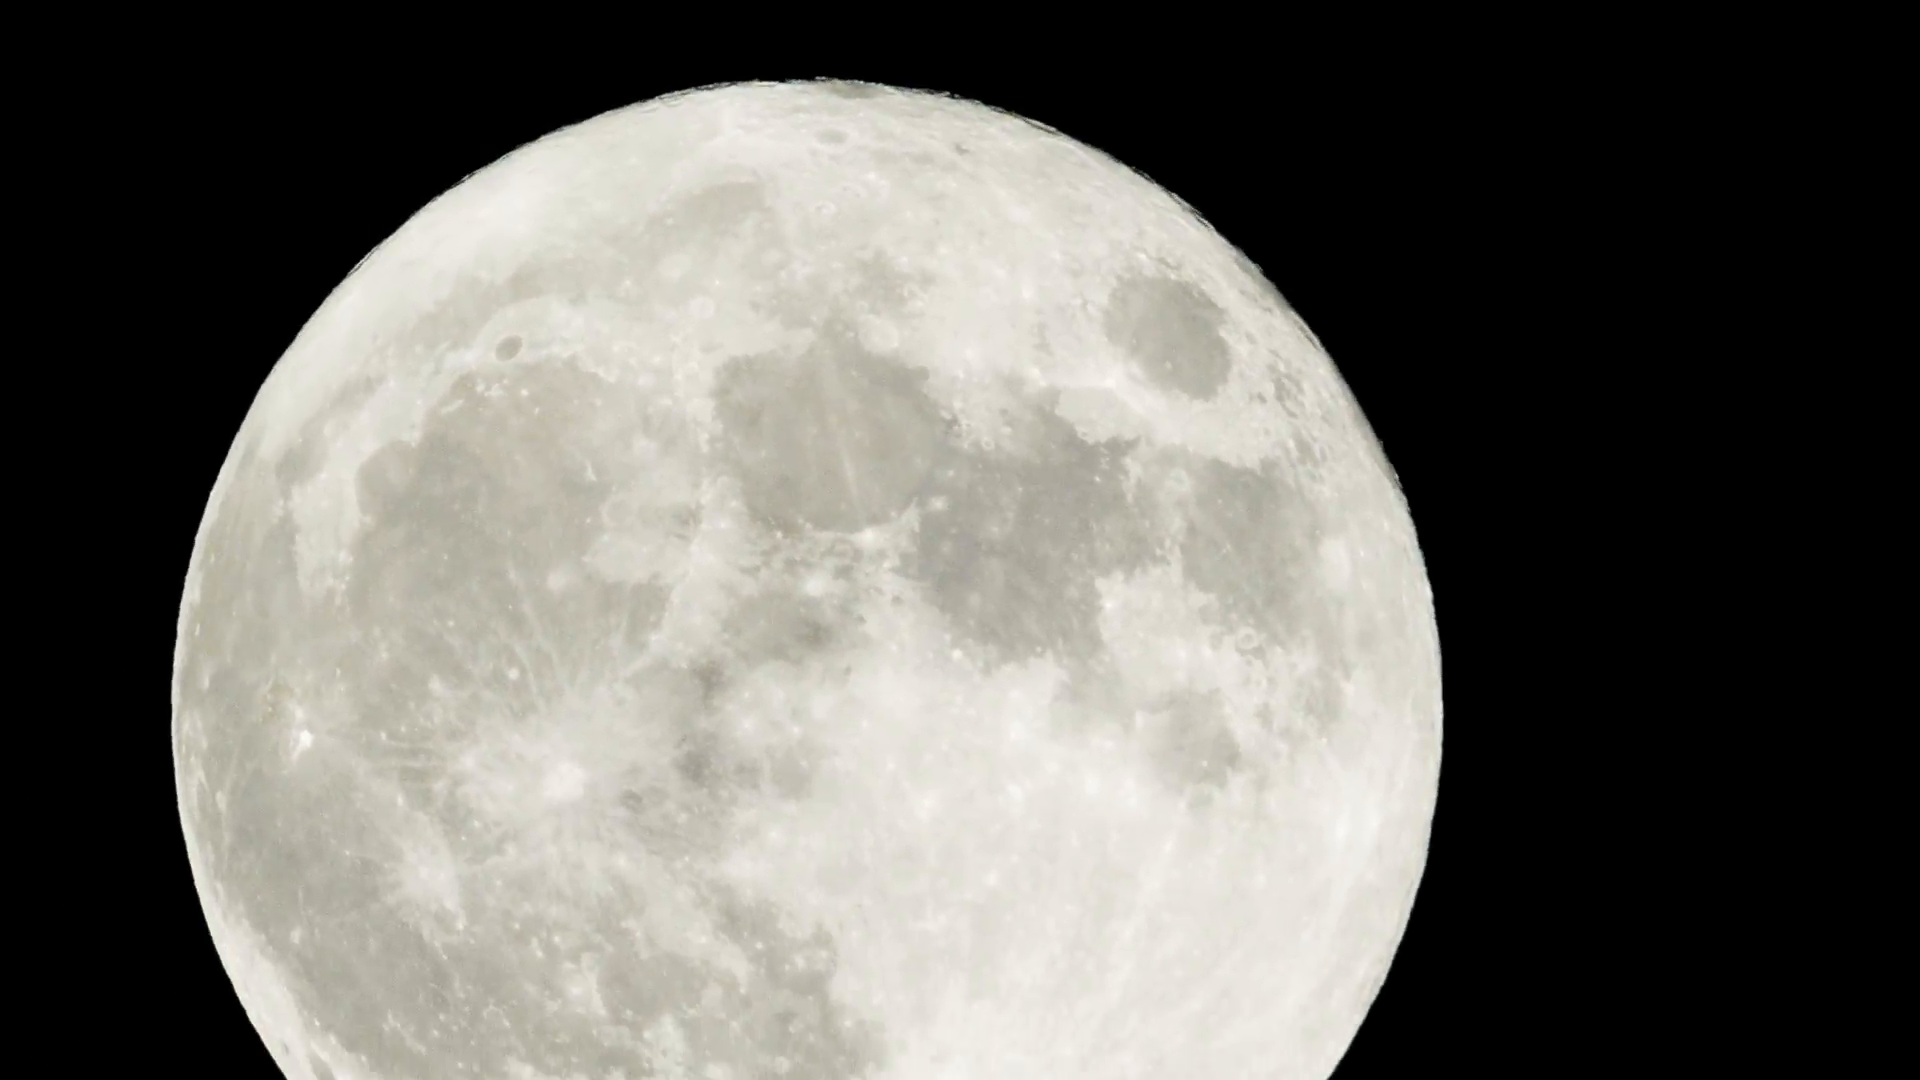 Super zoom timelapse of the full moon over the dark black sky at night. HD  footage made of high resolution images shot in RAW. - Full Moon PNG Black And White